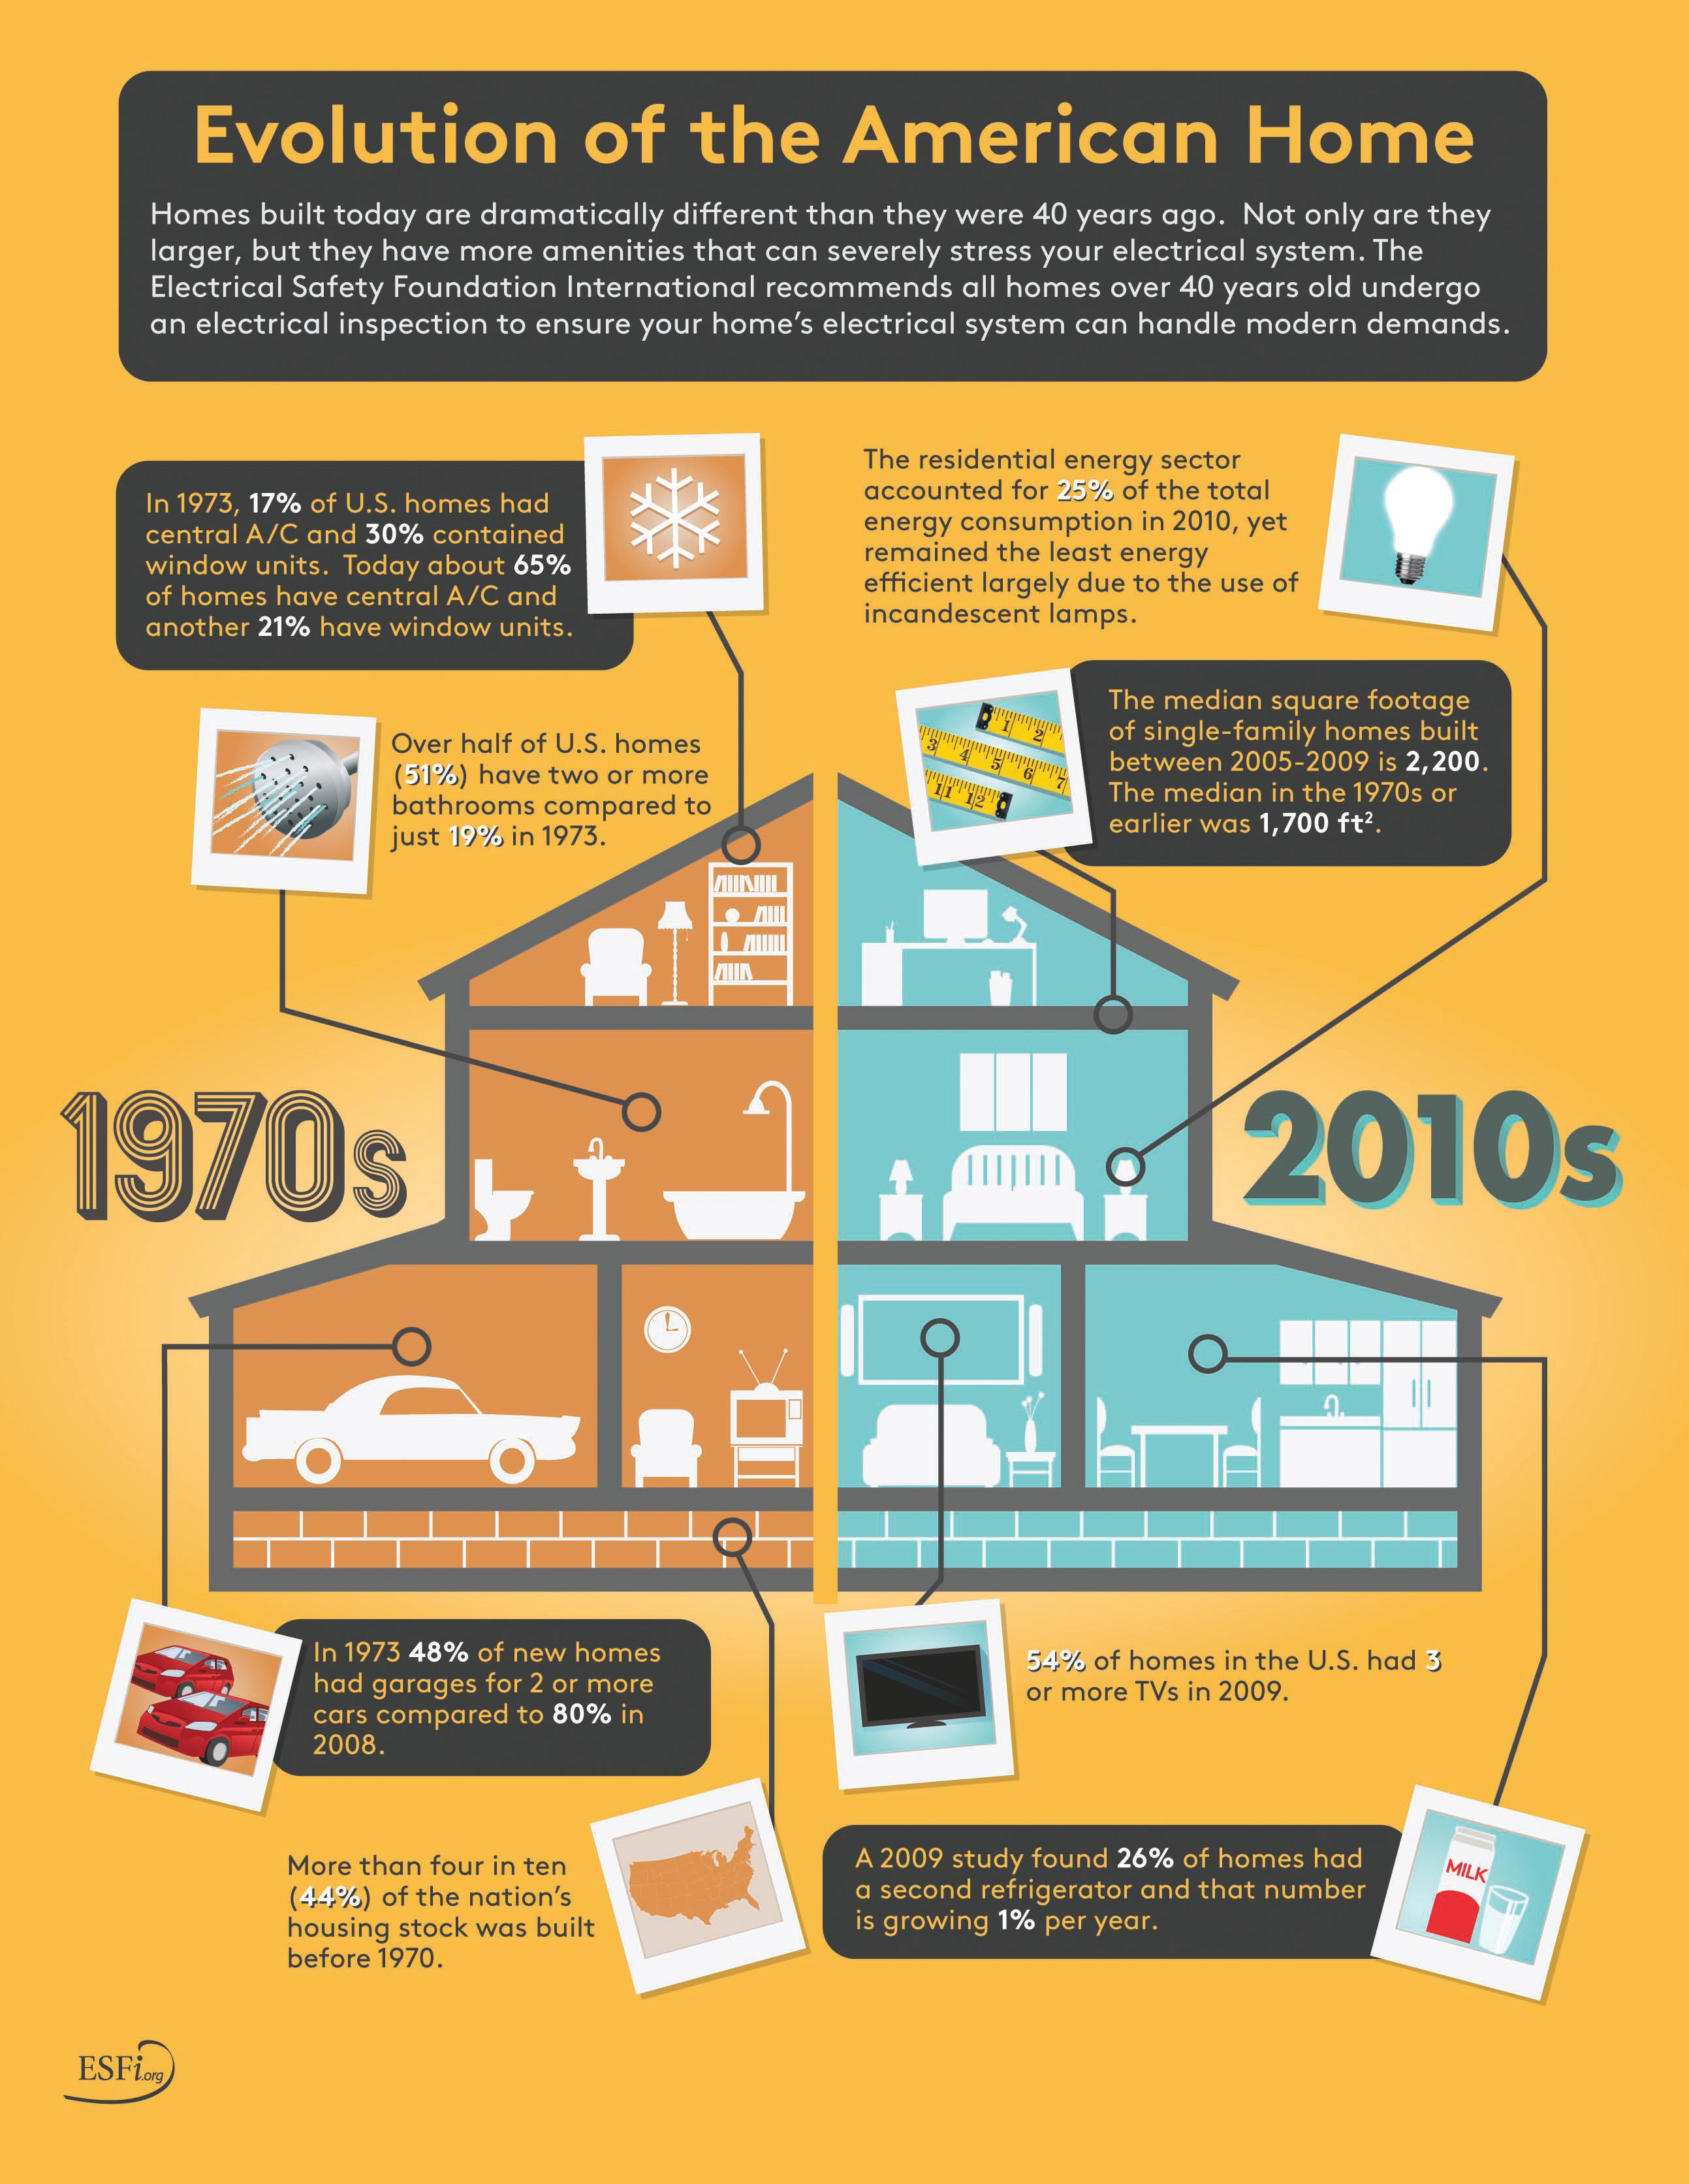 types of home wiring evolution of the american home evolution of home wiring